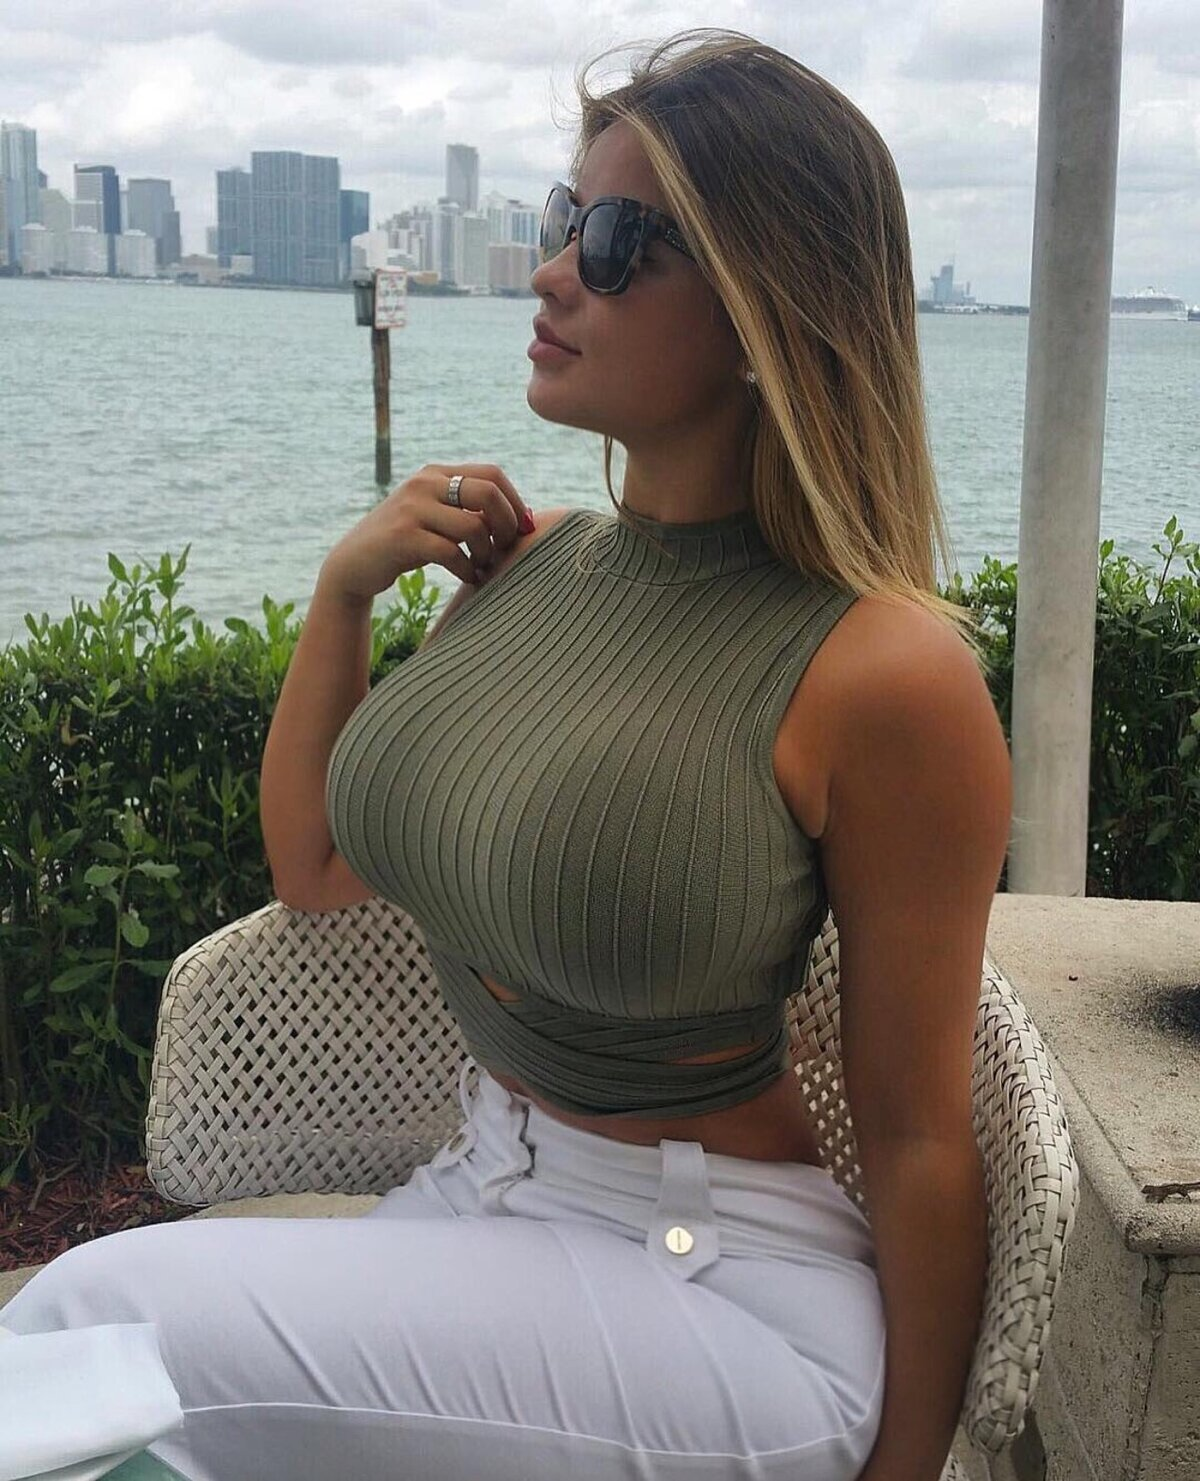 Big titstight top, porn images of indian sexy girls